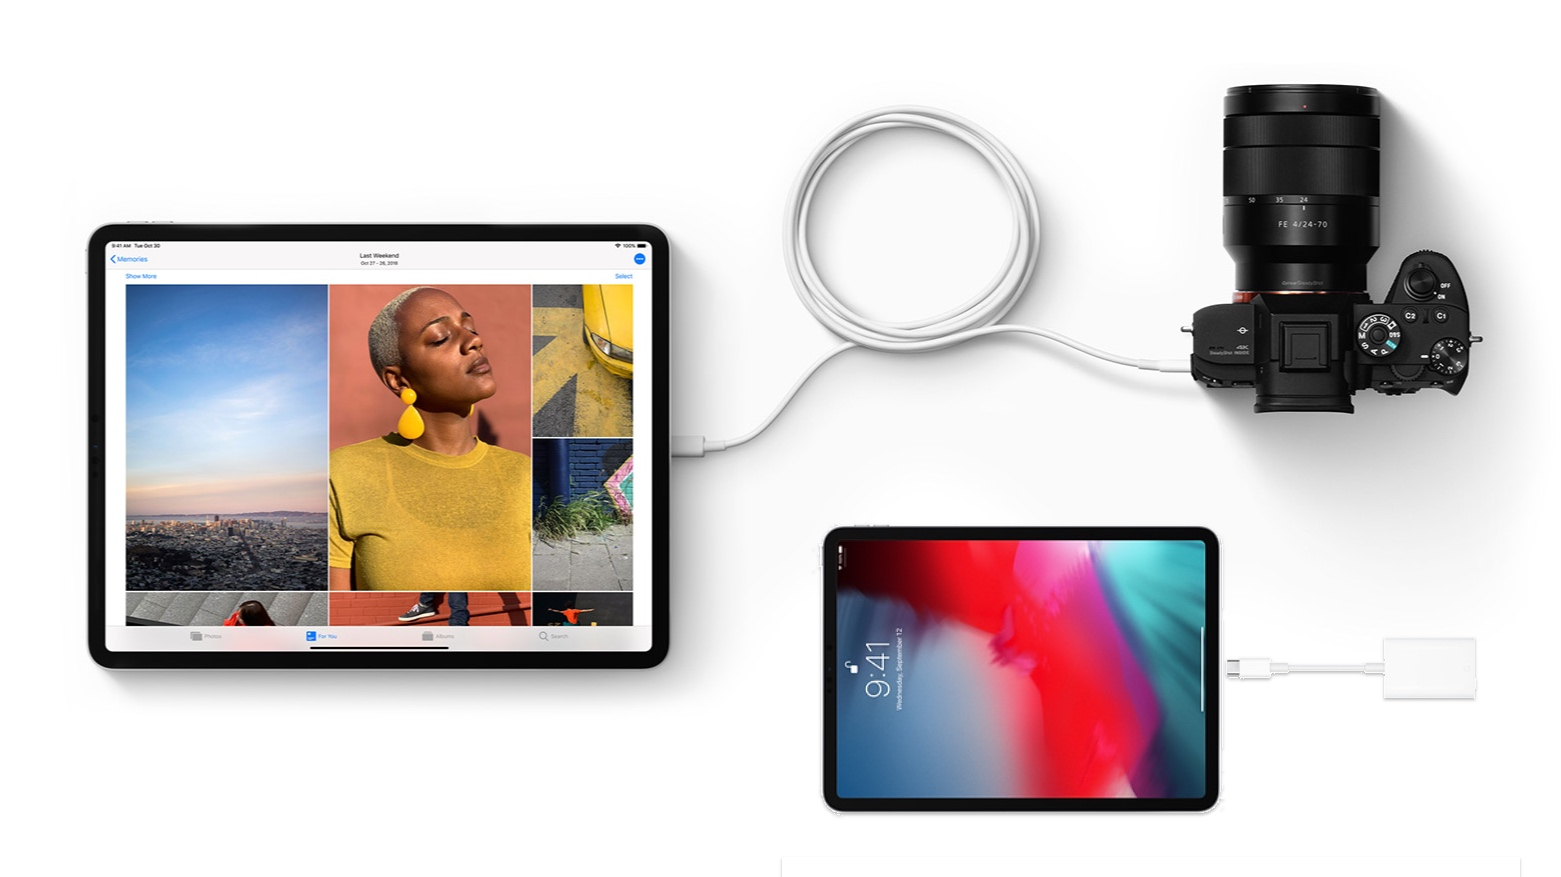 IPad Pro importing video and photos using the USB-C port